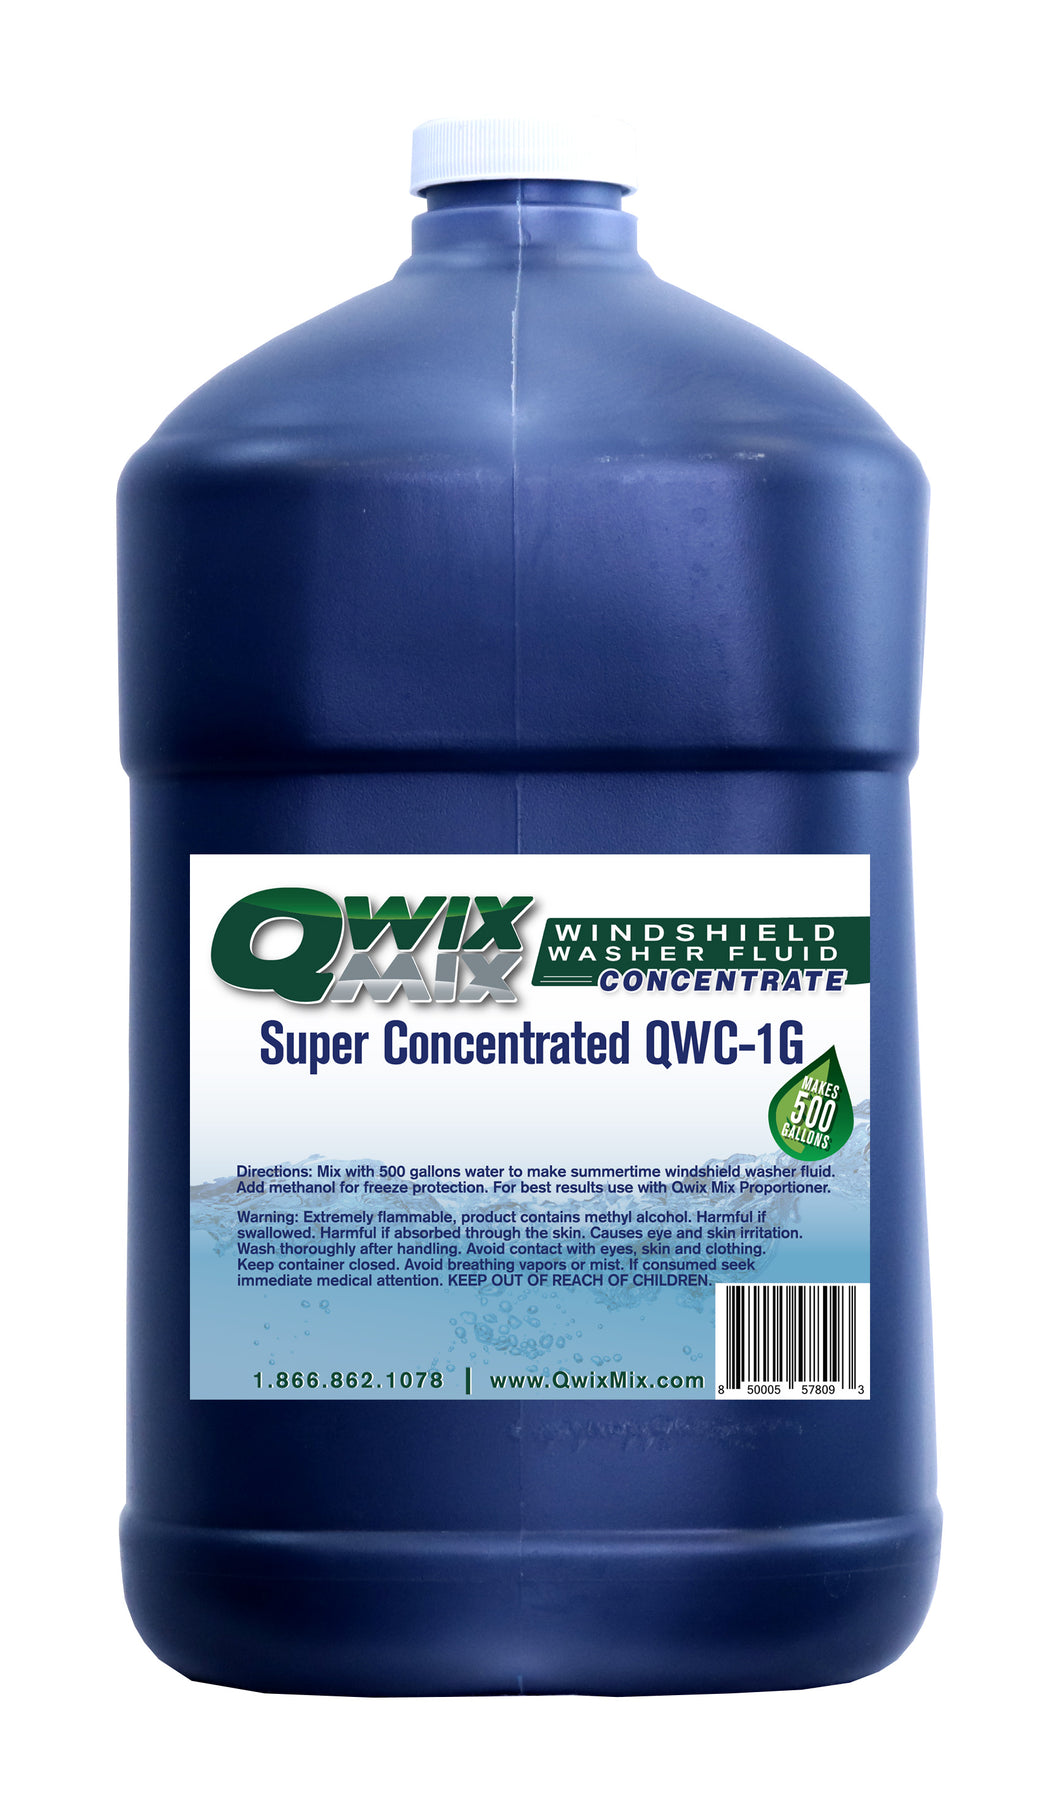 Qwix Mix 1 Gallon Jug of Biodegradable Concentrate For Making Bulk Windshield Washer Fluid. 1 Gallon of Concentrate Makes 500 Gallons